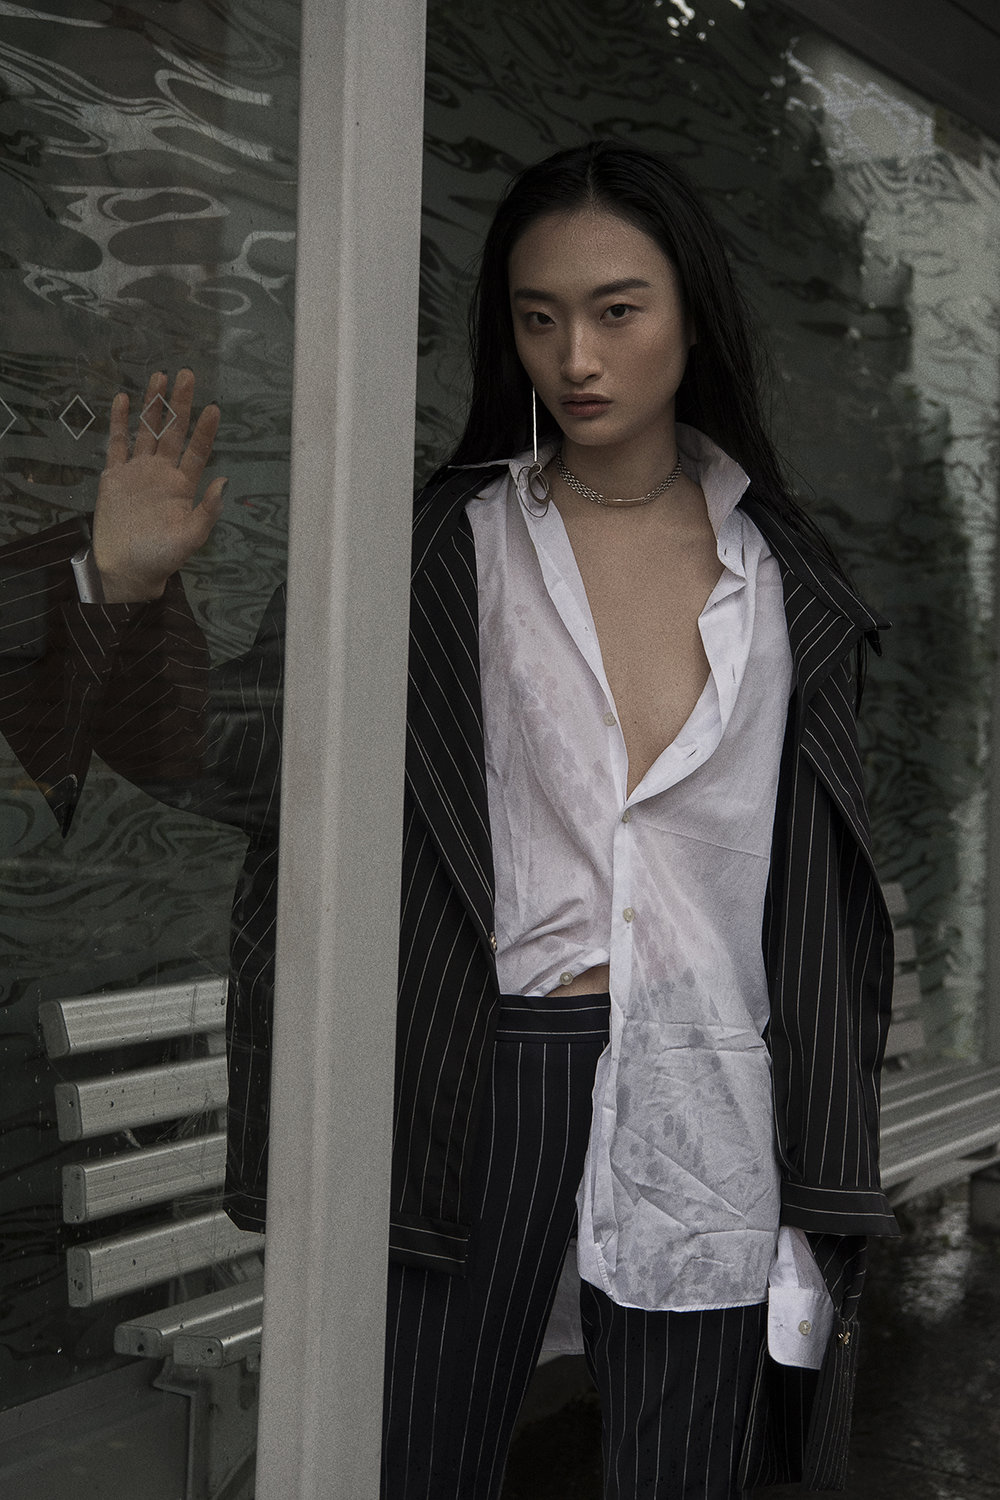 custom pinstripe shirt  aaizel  white collared shirt  calvin klein   pinstripe pant  acne  choker + earring  models own